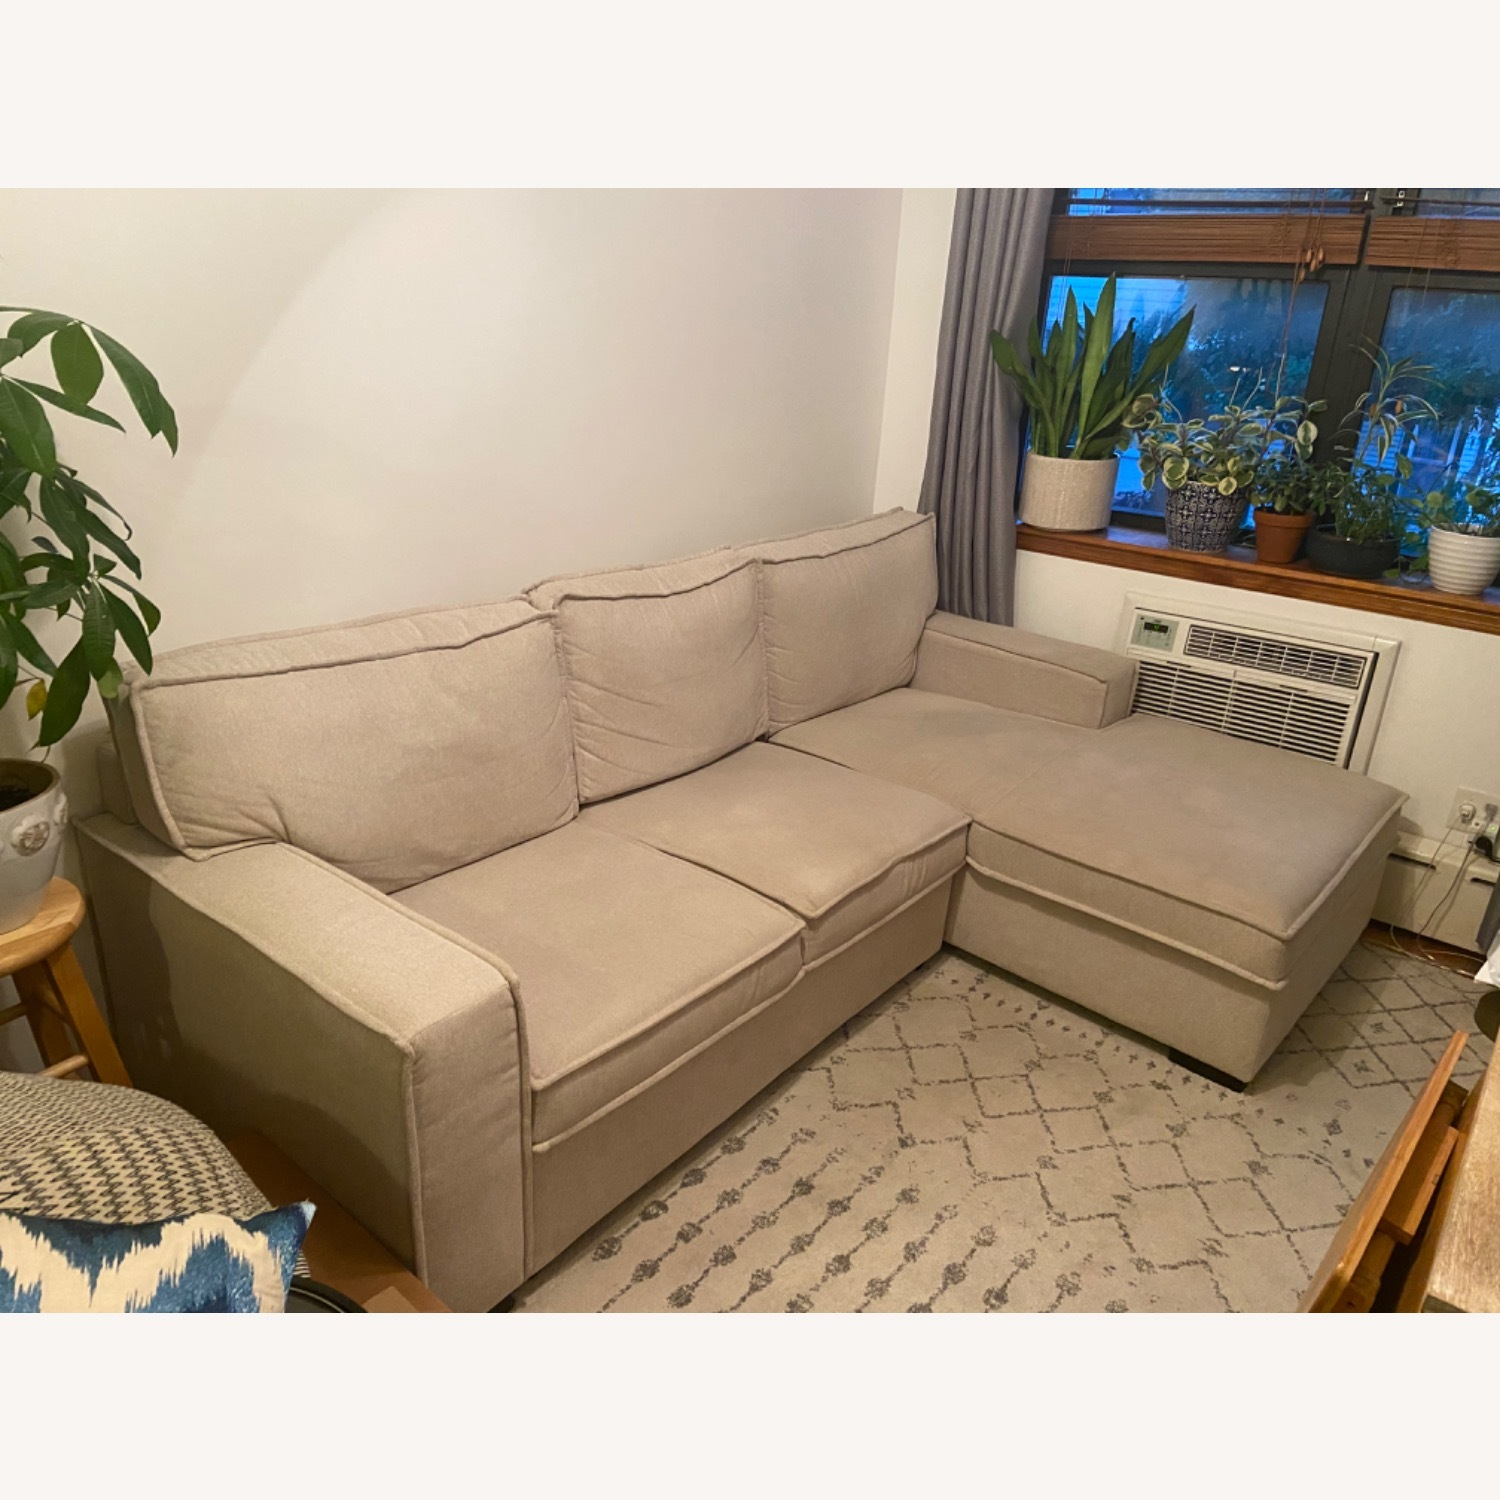 Bob's Discount Sectional with Storage - image-1